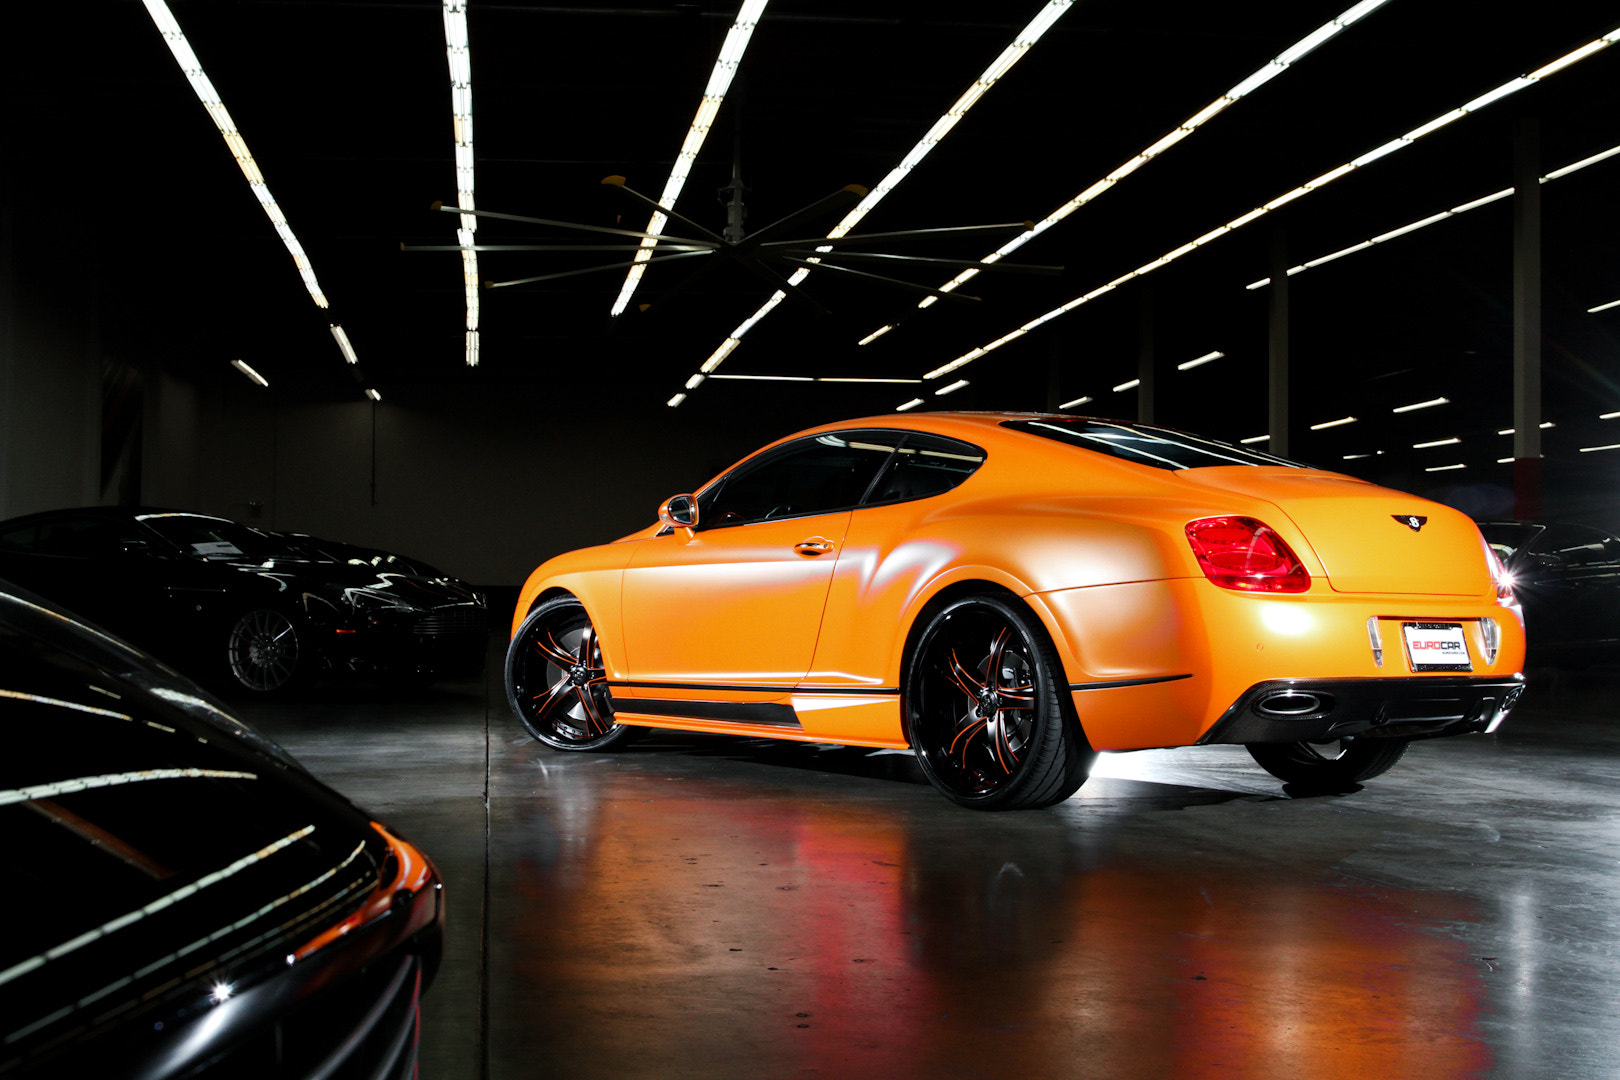 Photograph Satin Orange Bentley GT by Philip Tieu on 500px